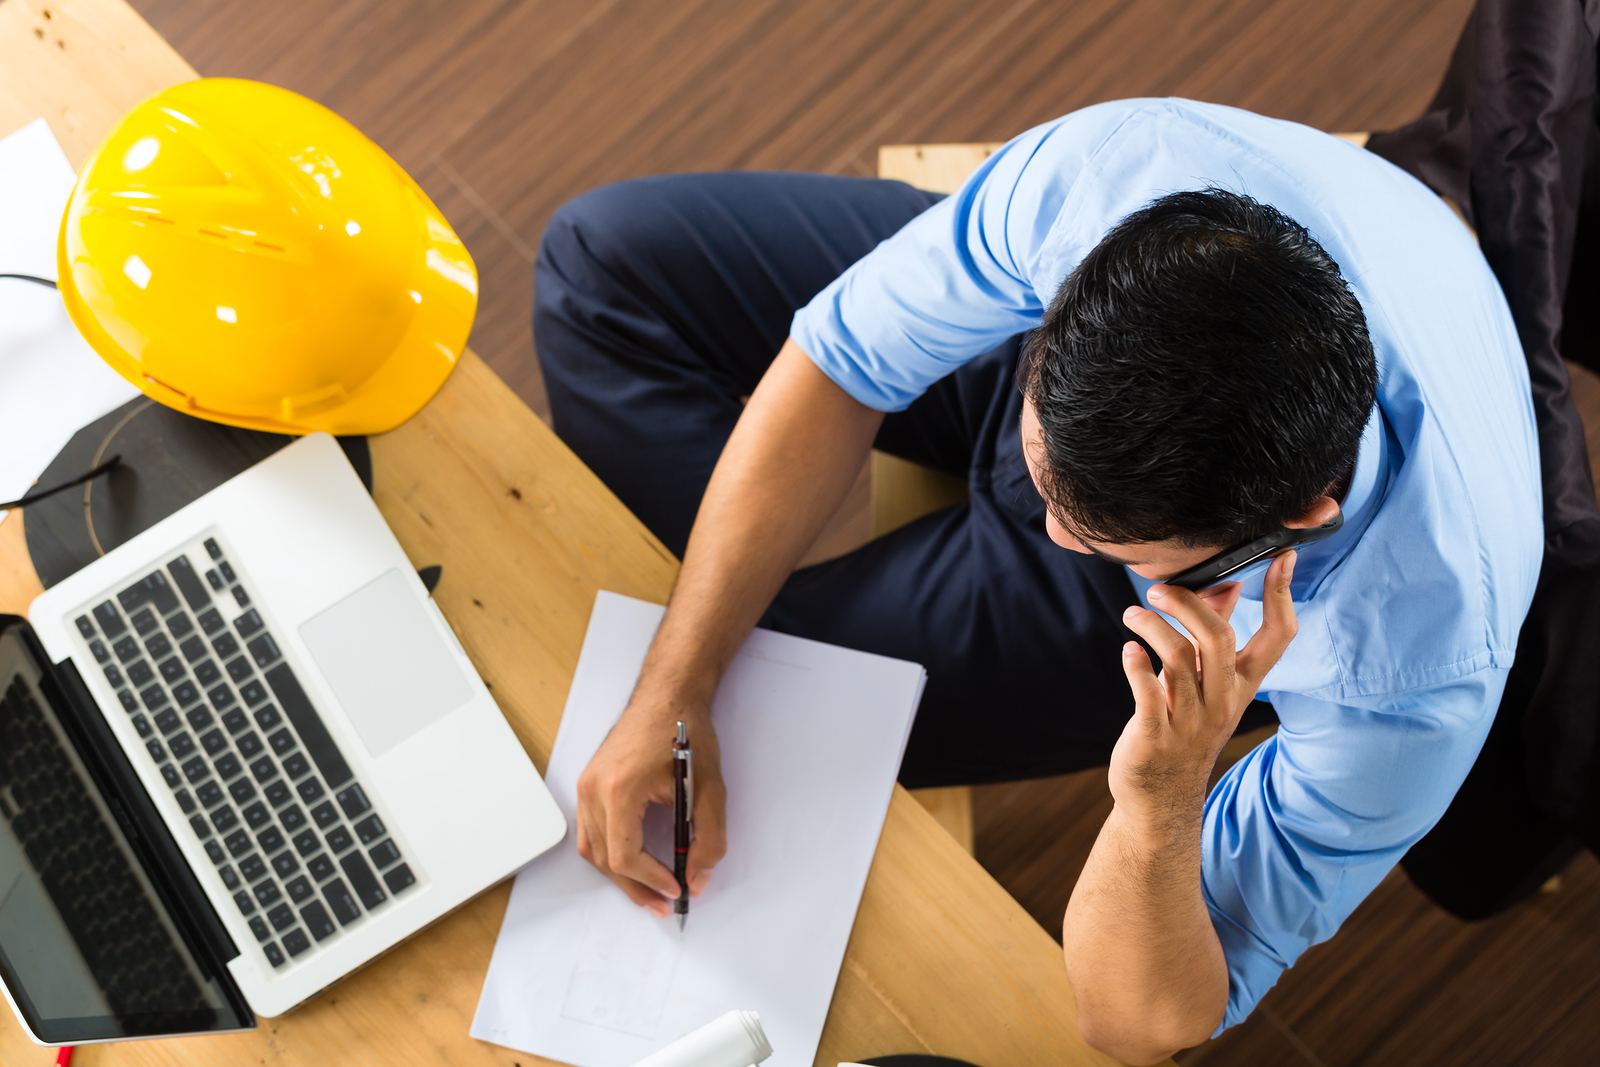 Helping You With Most Professional Health And Safety Awareness Courses